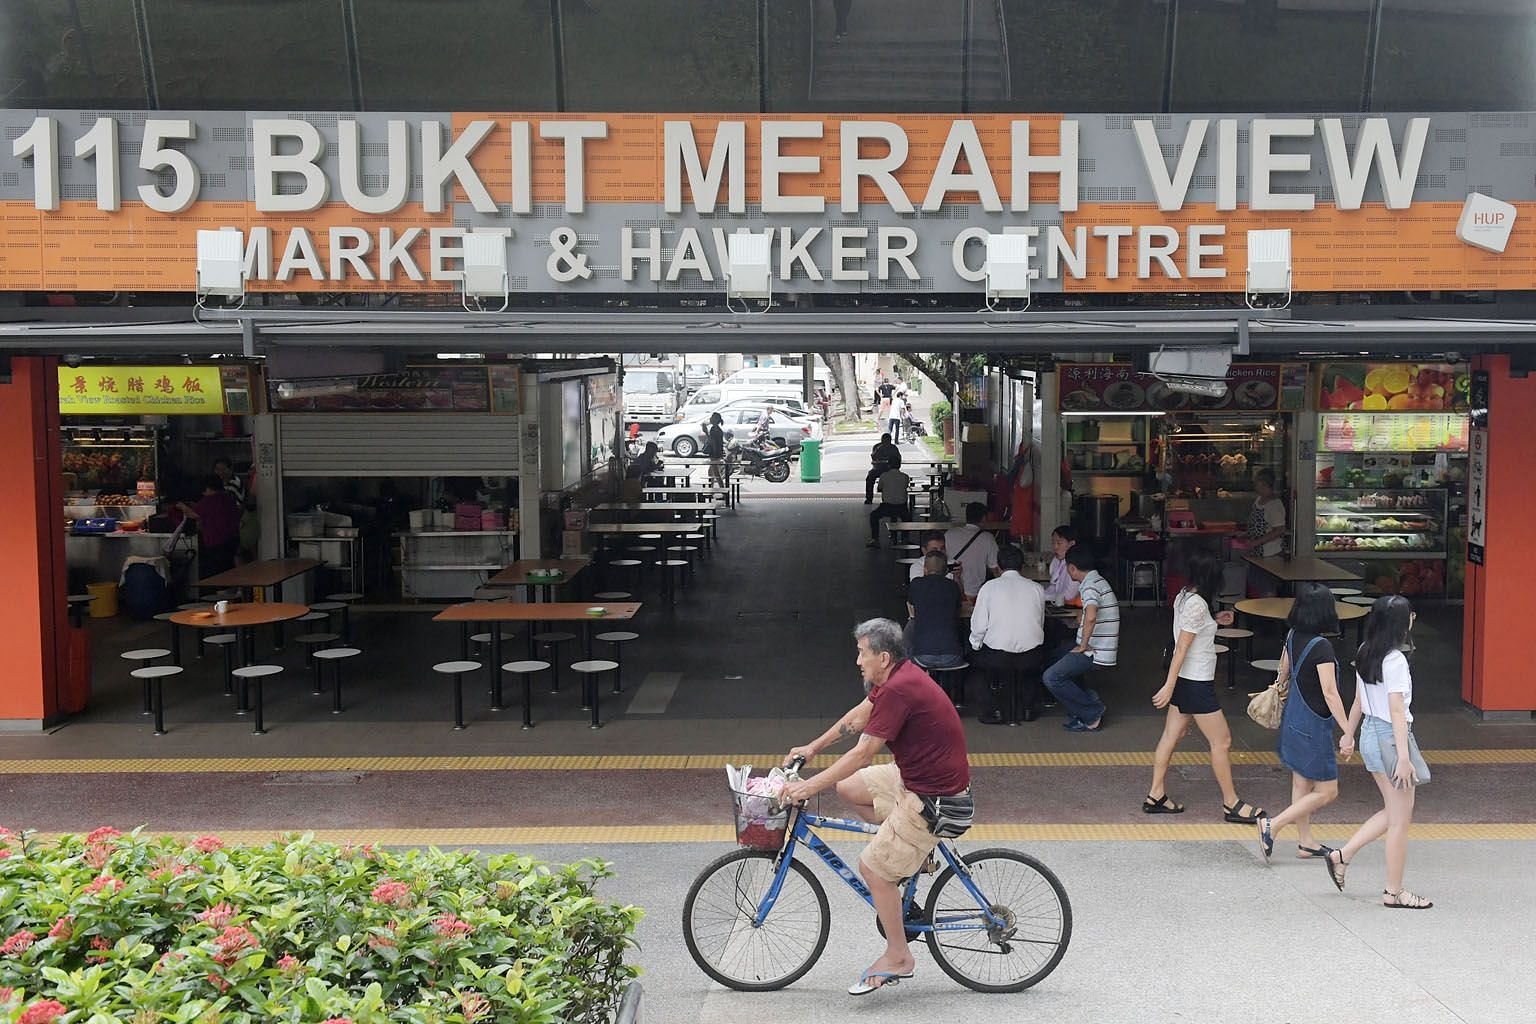 Madam Mung Kuai Ho, 87, having breakfast at the revamped hawker centre. Its reopening means she can return to her much-loved routine of eating there. The newly reopened market and hawker centre has widened walkways, accessibility ramps, slip-resistan